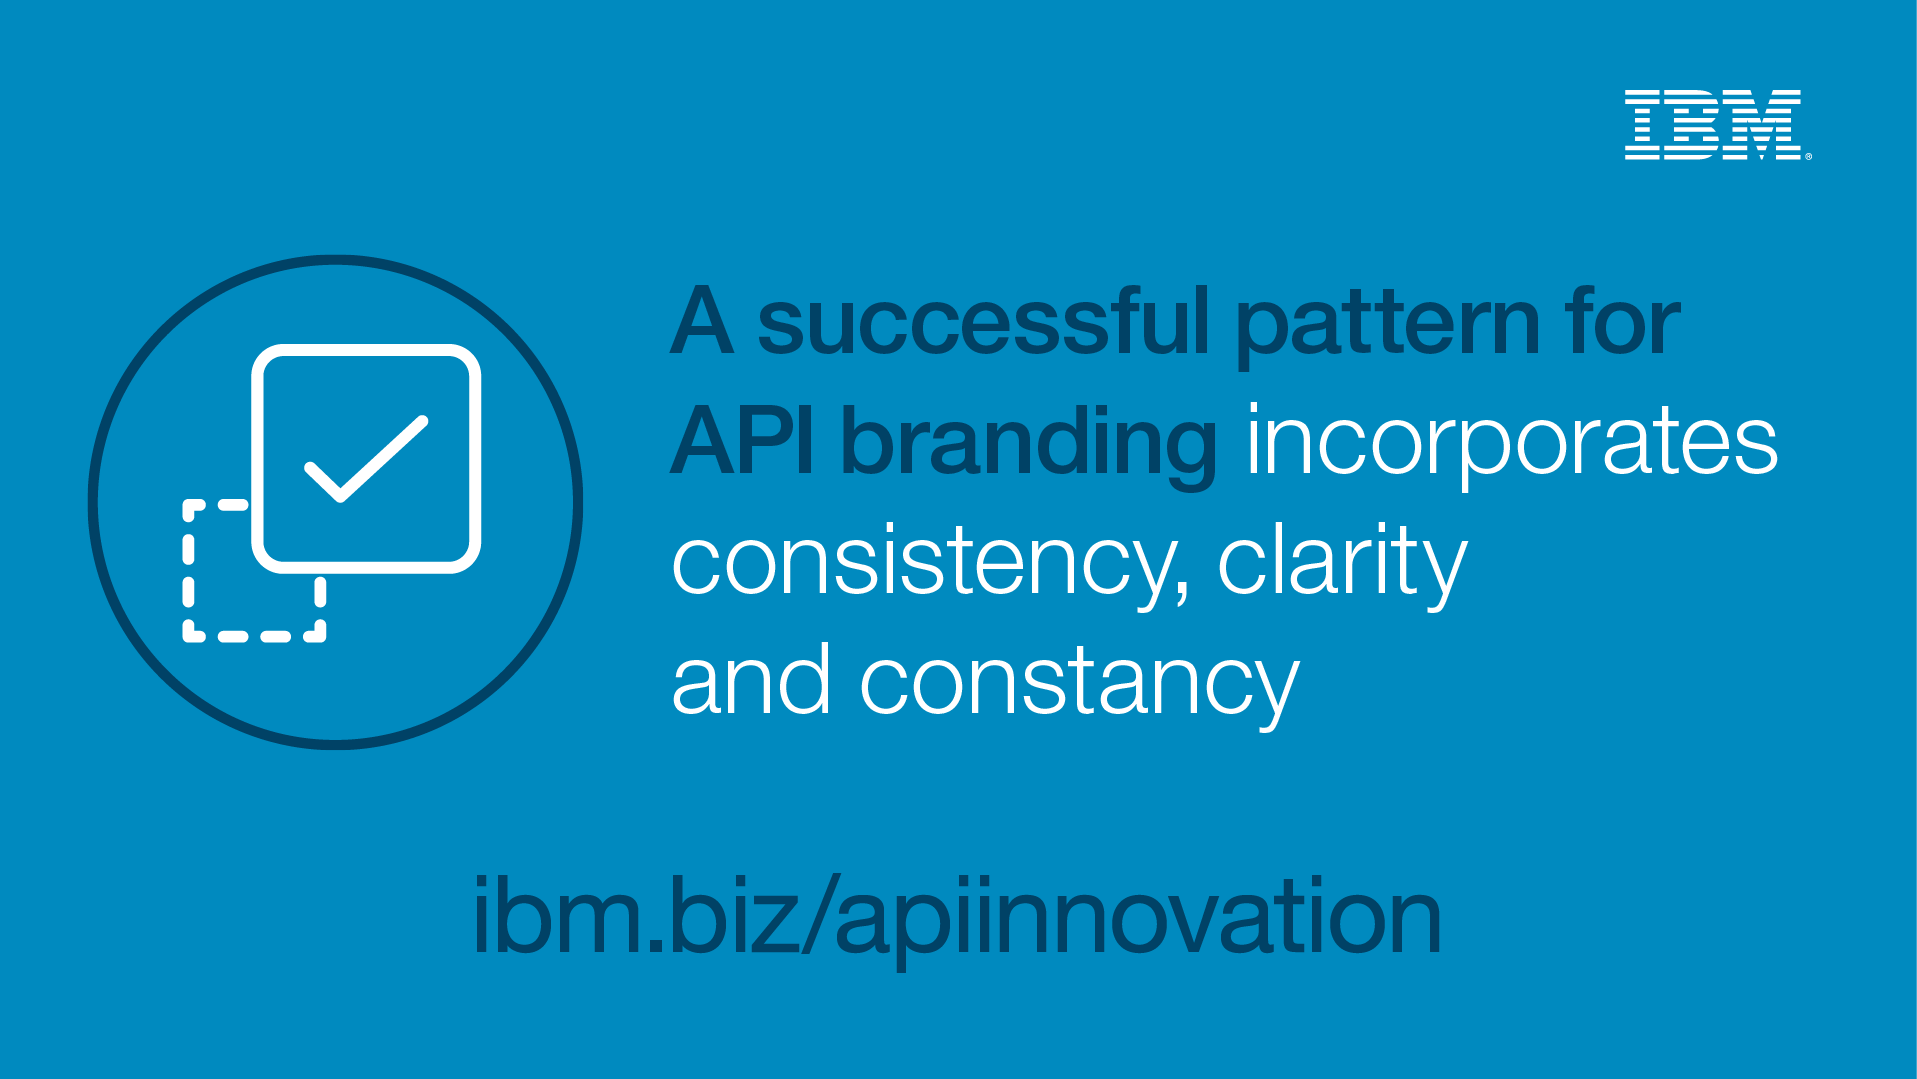 A successful pattern for API branding incorporates consistency, clarity and constancy - ibm.biz/apiinnovation